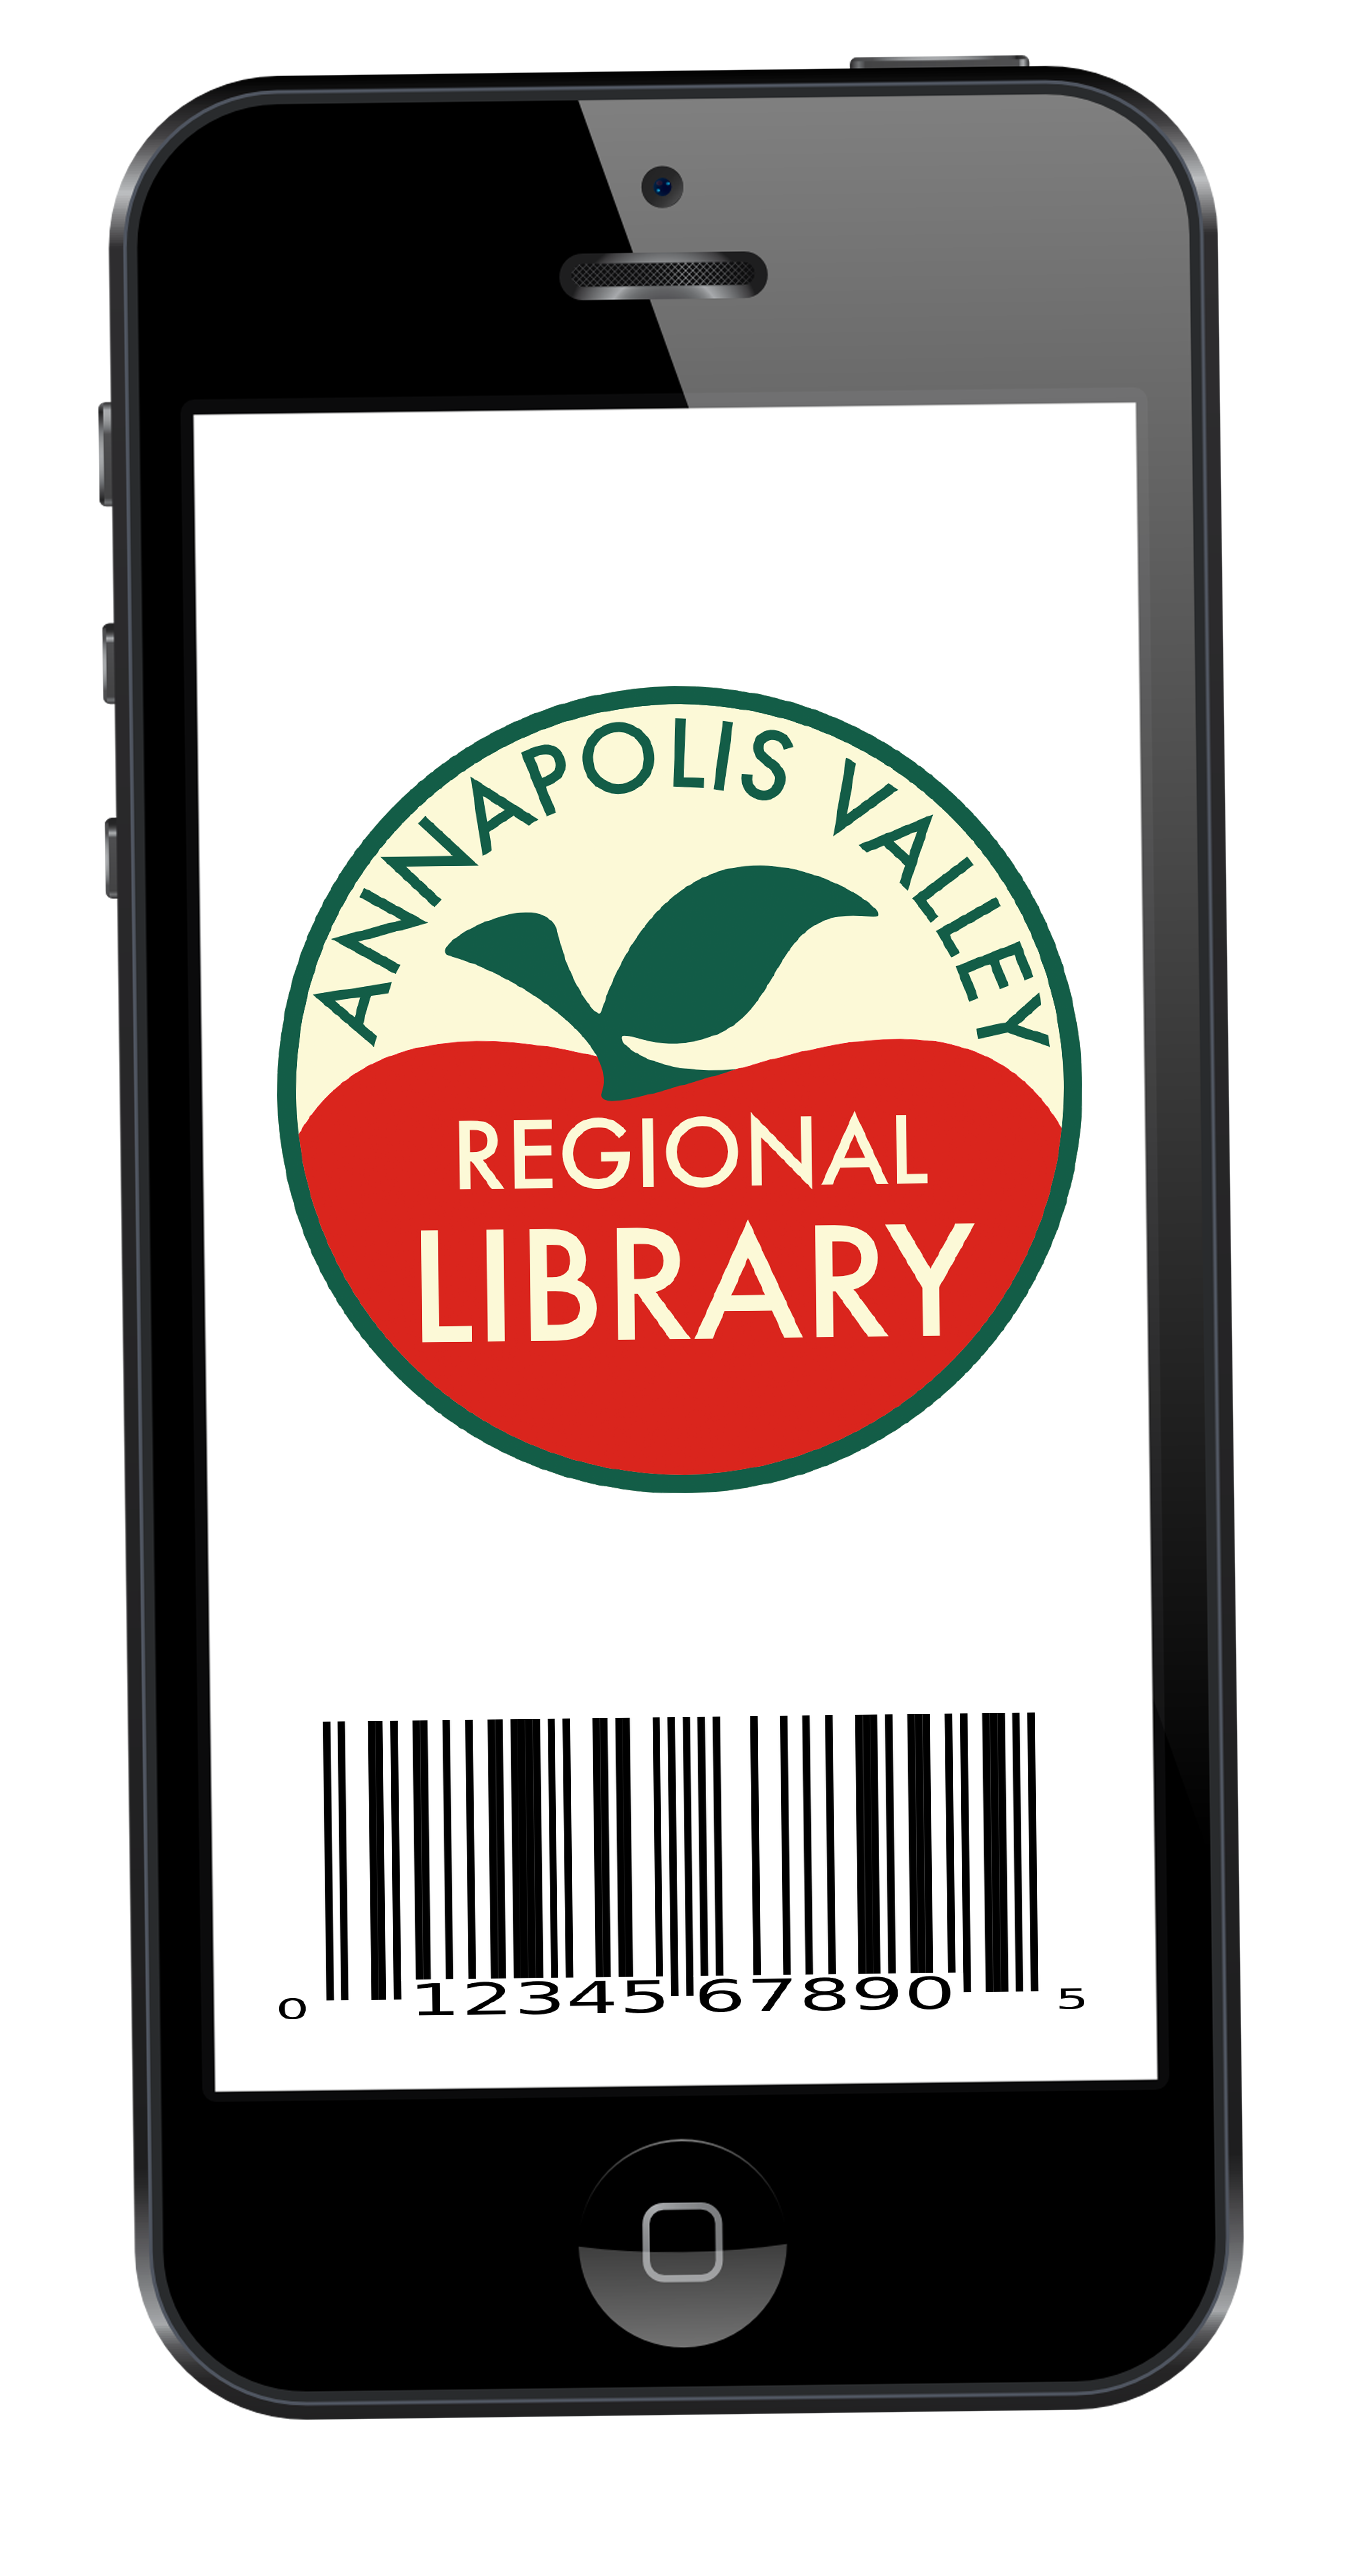 Store your library card in a mobile app